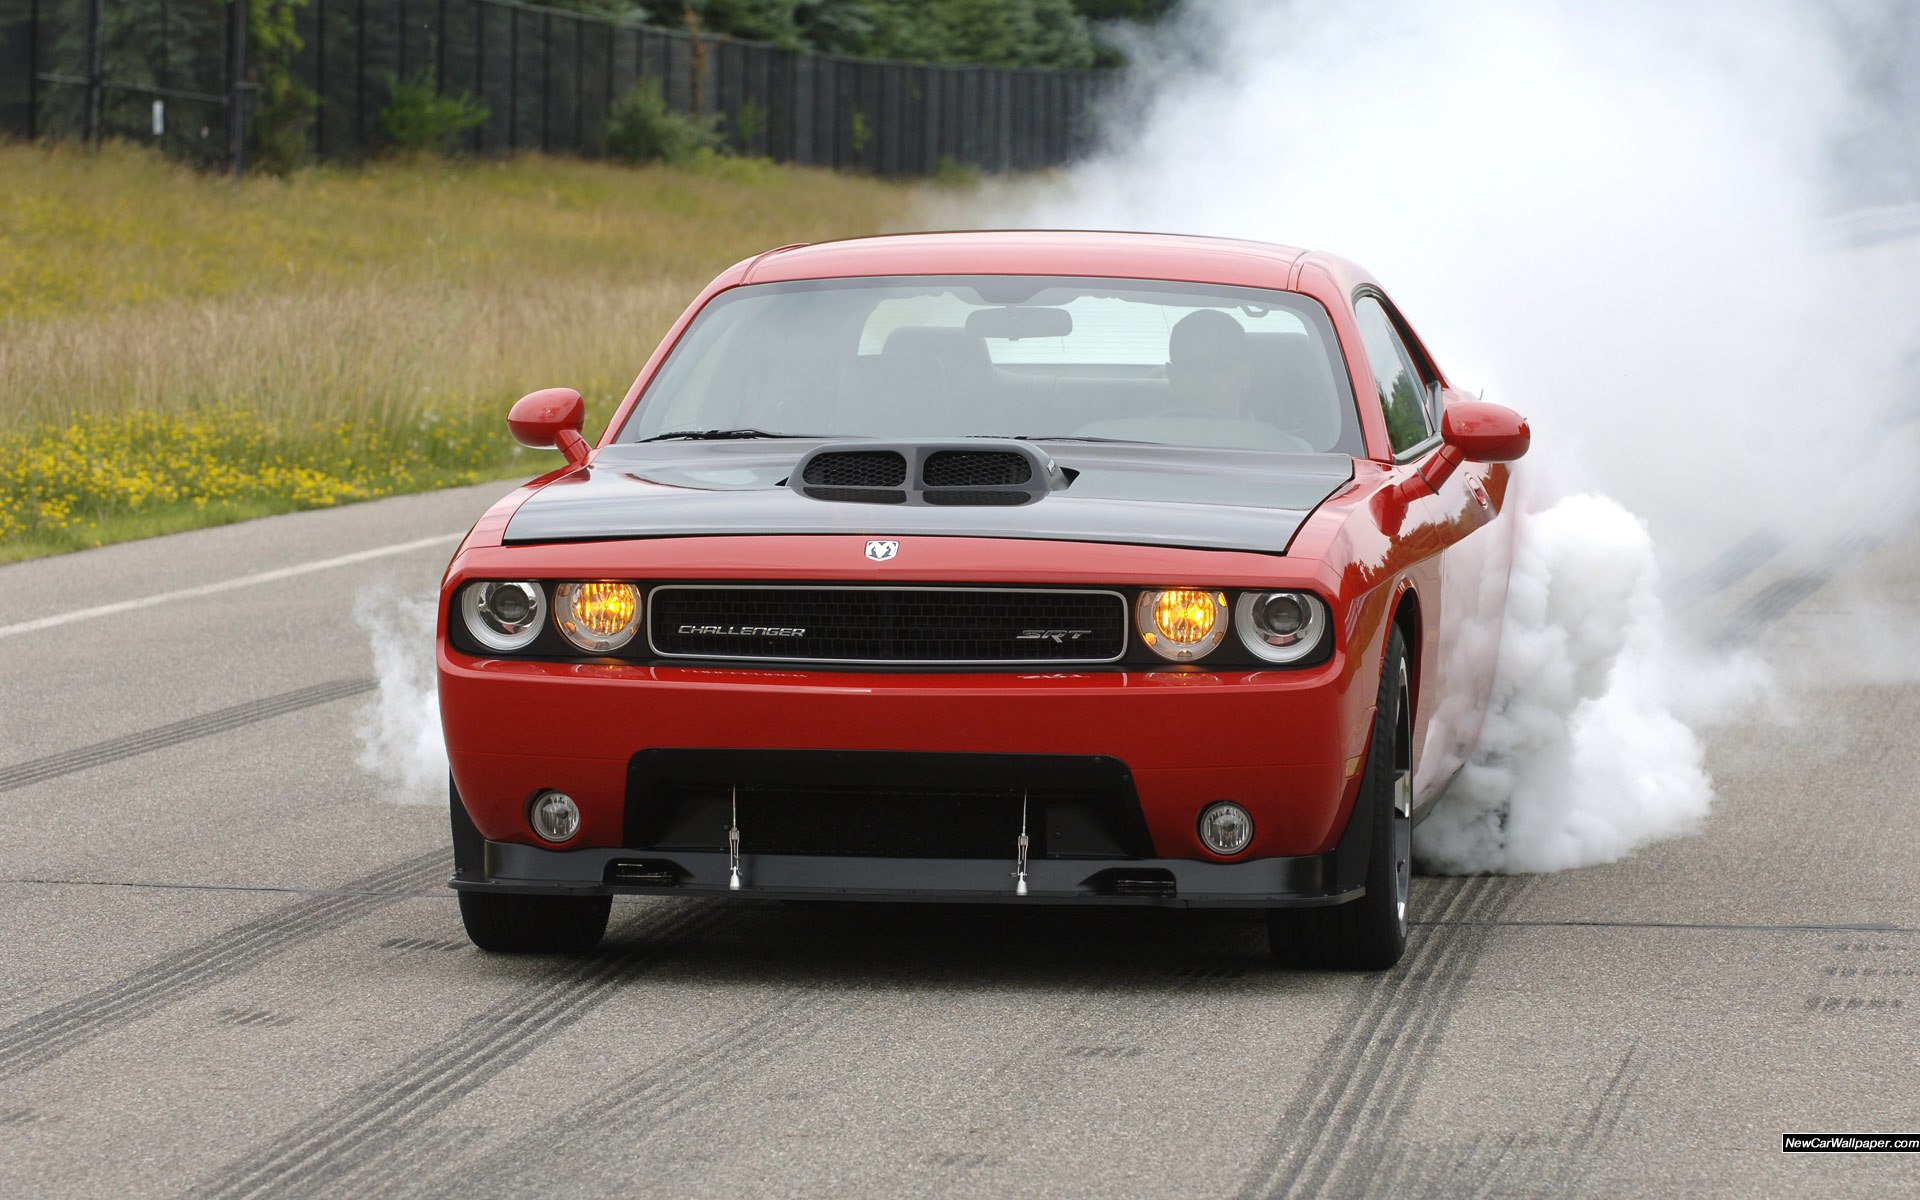 2560x1600 Smoke Muscle Cars Drifting Cars Vehicles Burnout Dodge